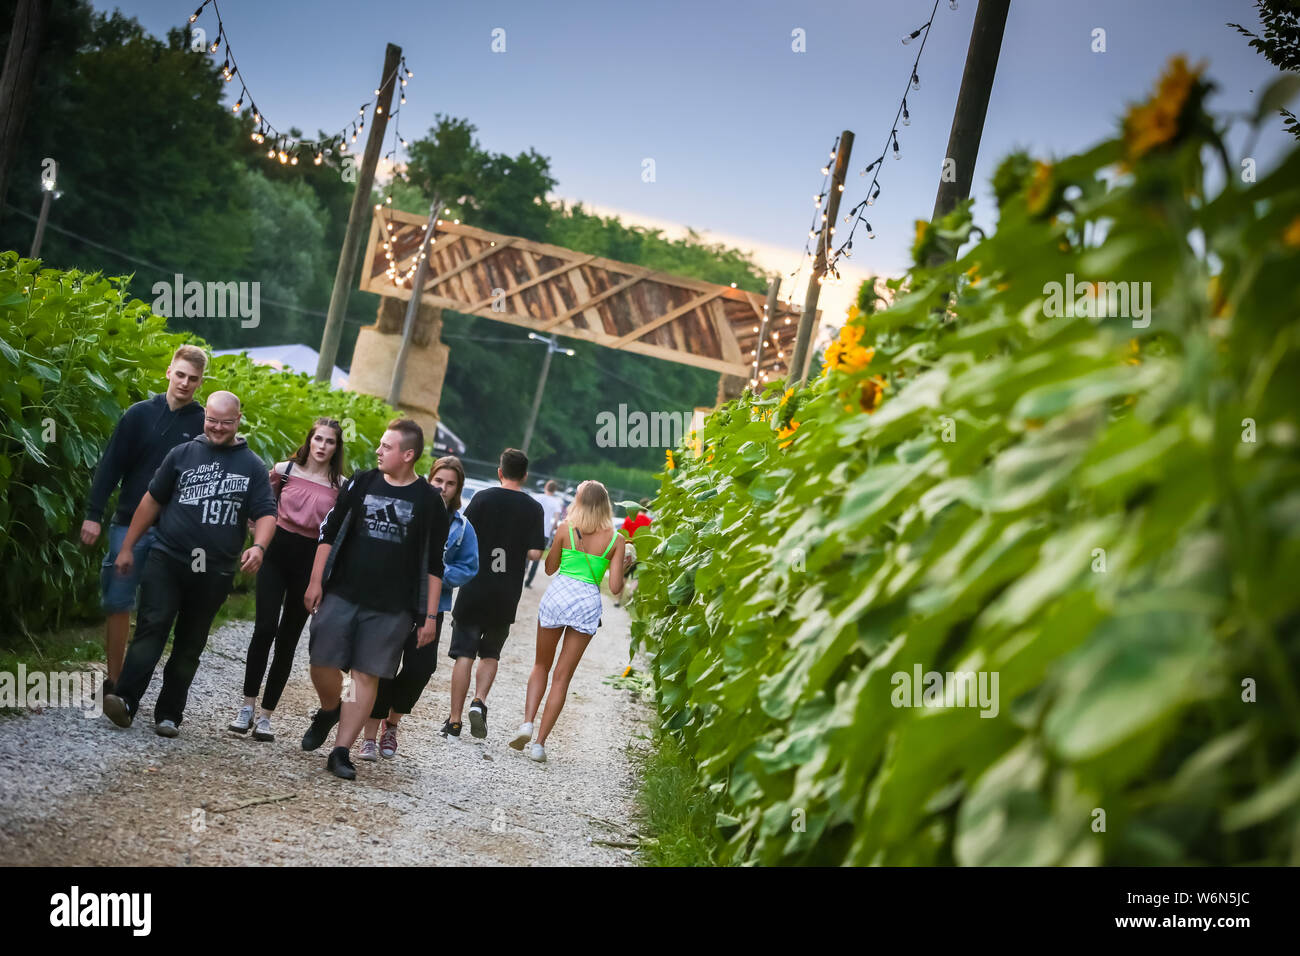 Brezje, Croatia - 20th July, 2019 : People walking thru the field of sunflowers on the entrance to the Forestland, ultimate forest electronic music fe Stock Photo